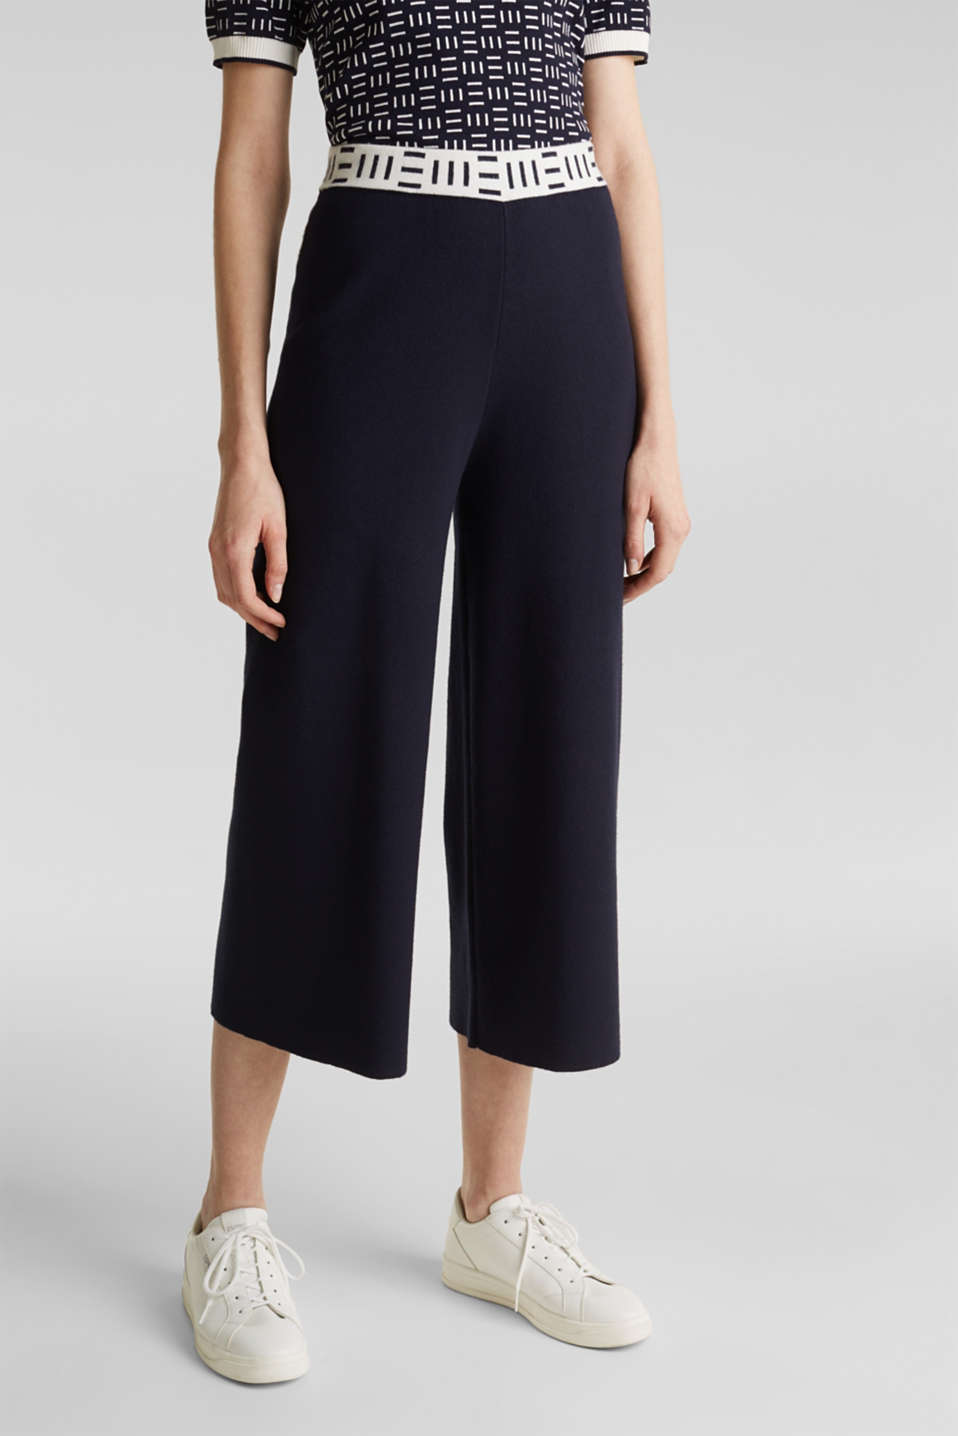 Knit culottes with a logo waistband, NAVY, detail image number 6